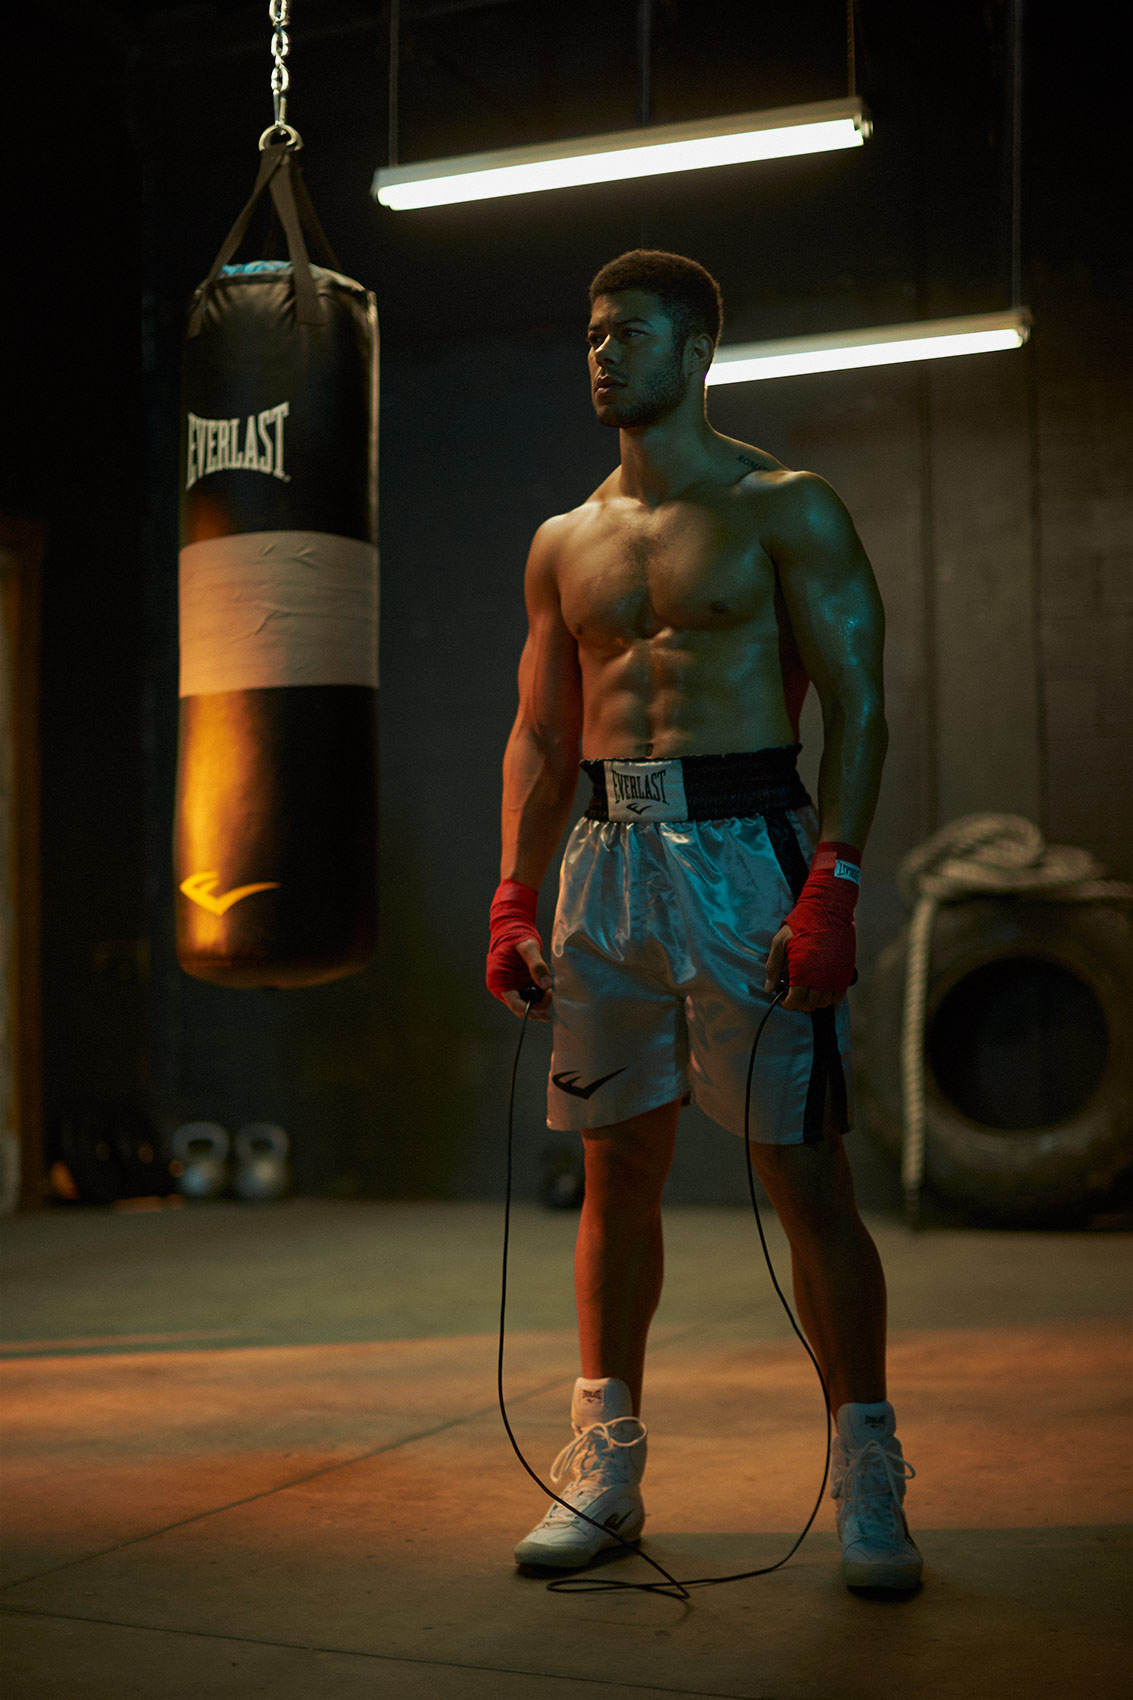 20160308_everlast-gym_1396-web